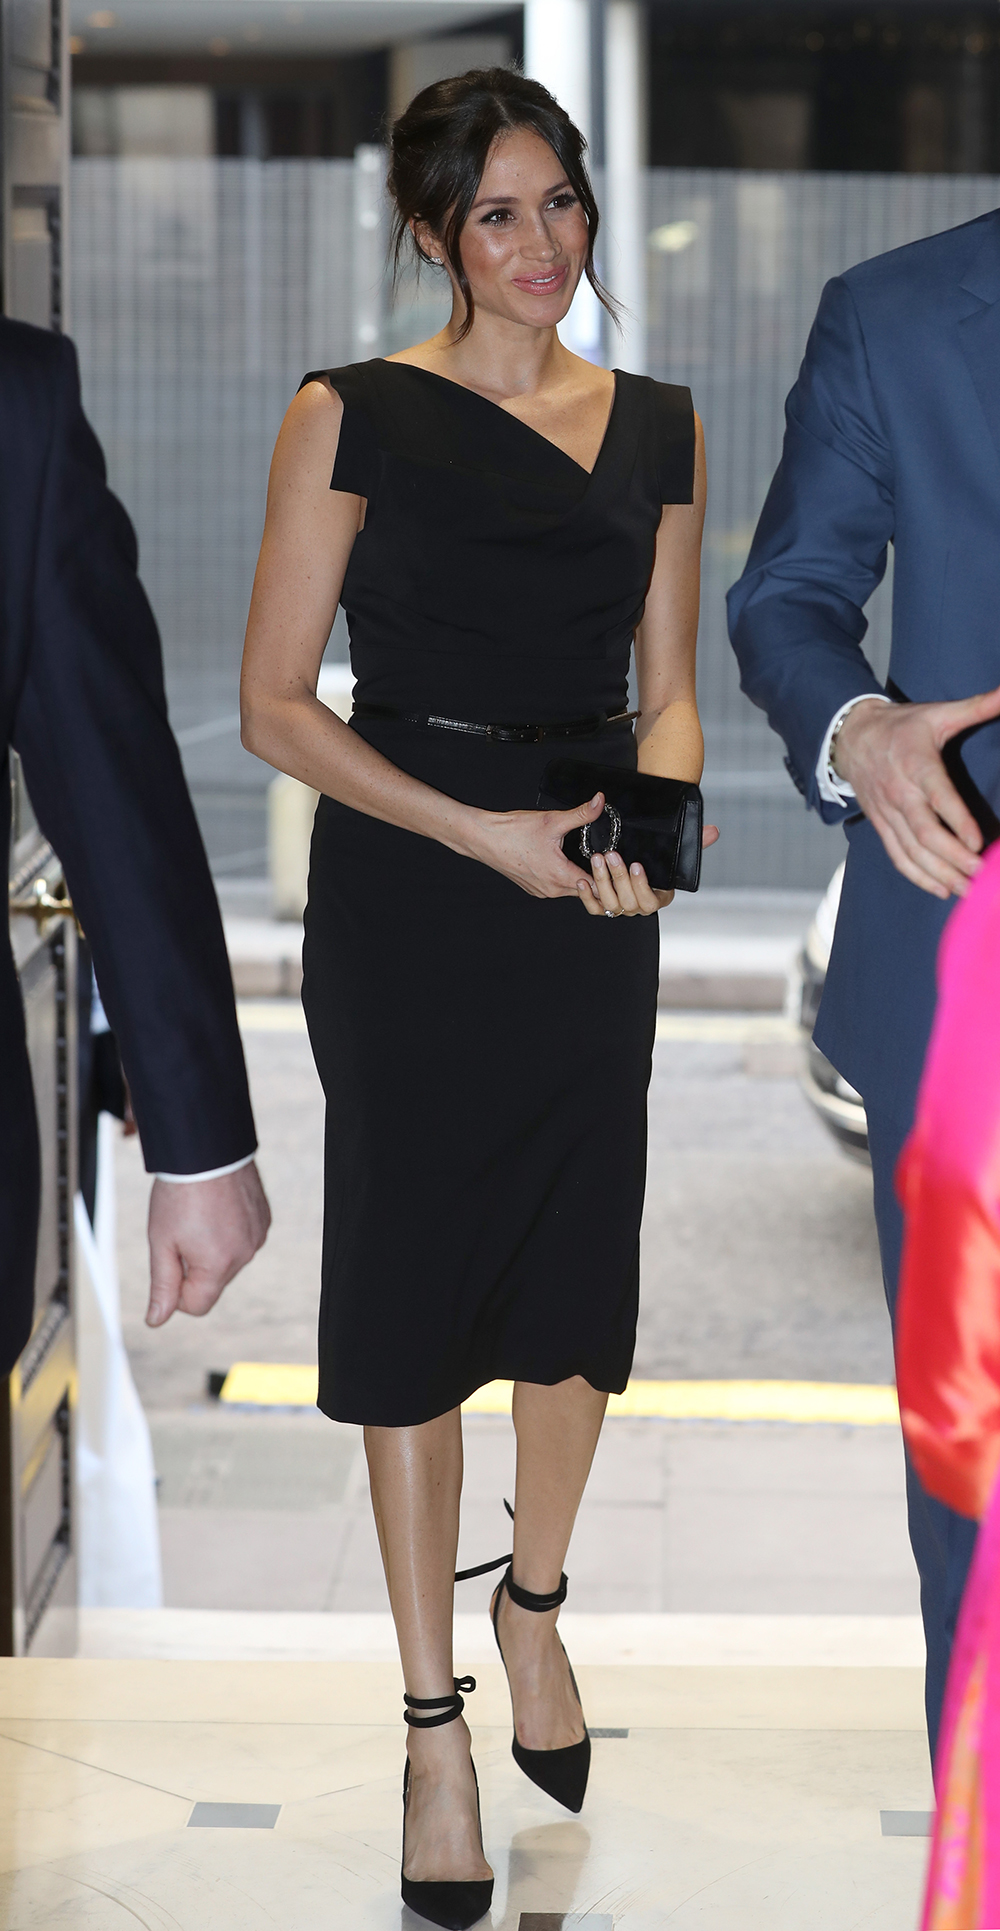 gettyimages 948765698 Under the Radar Fashion Brands Meghan Markle Has Elevated